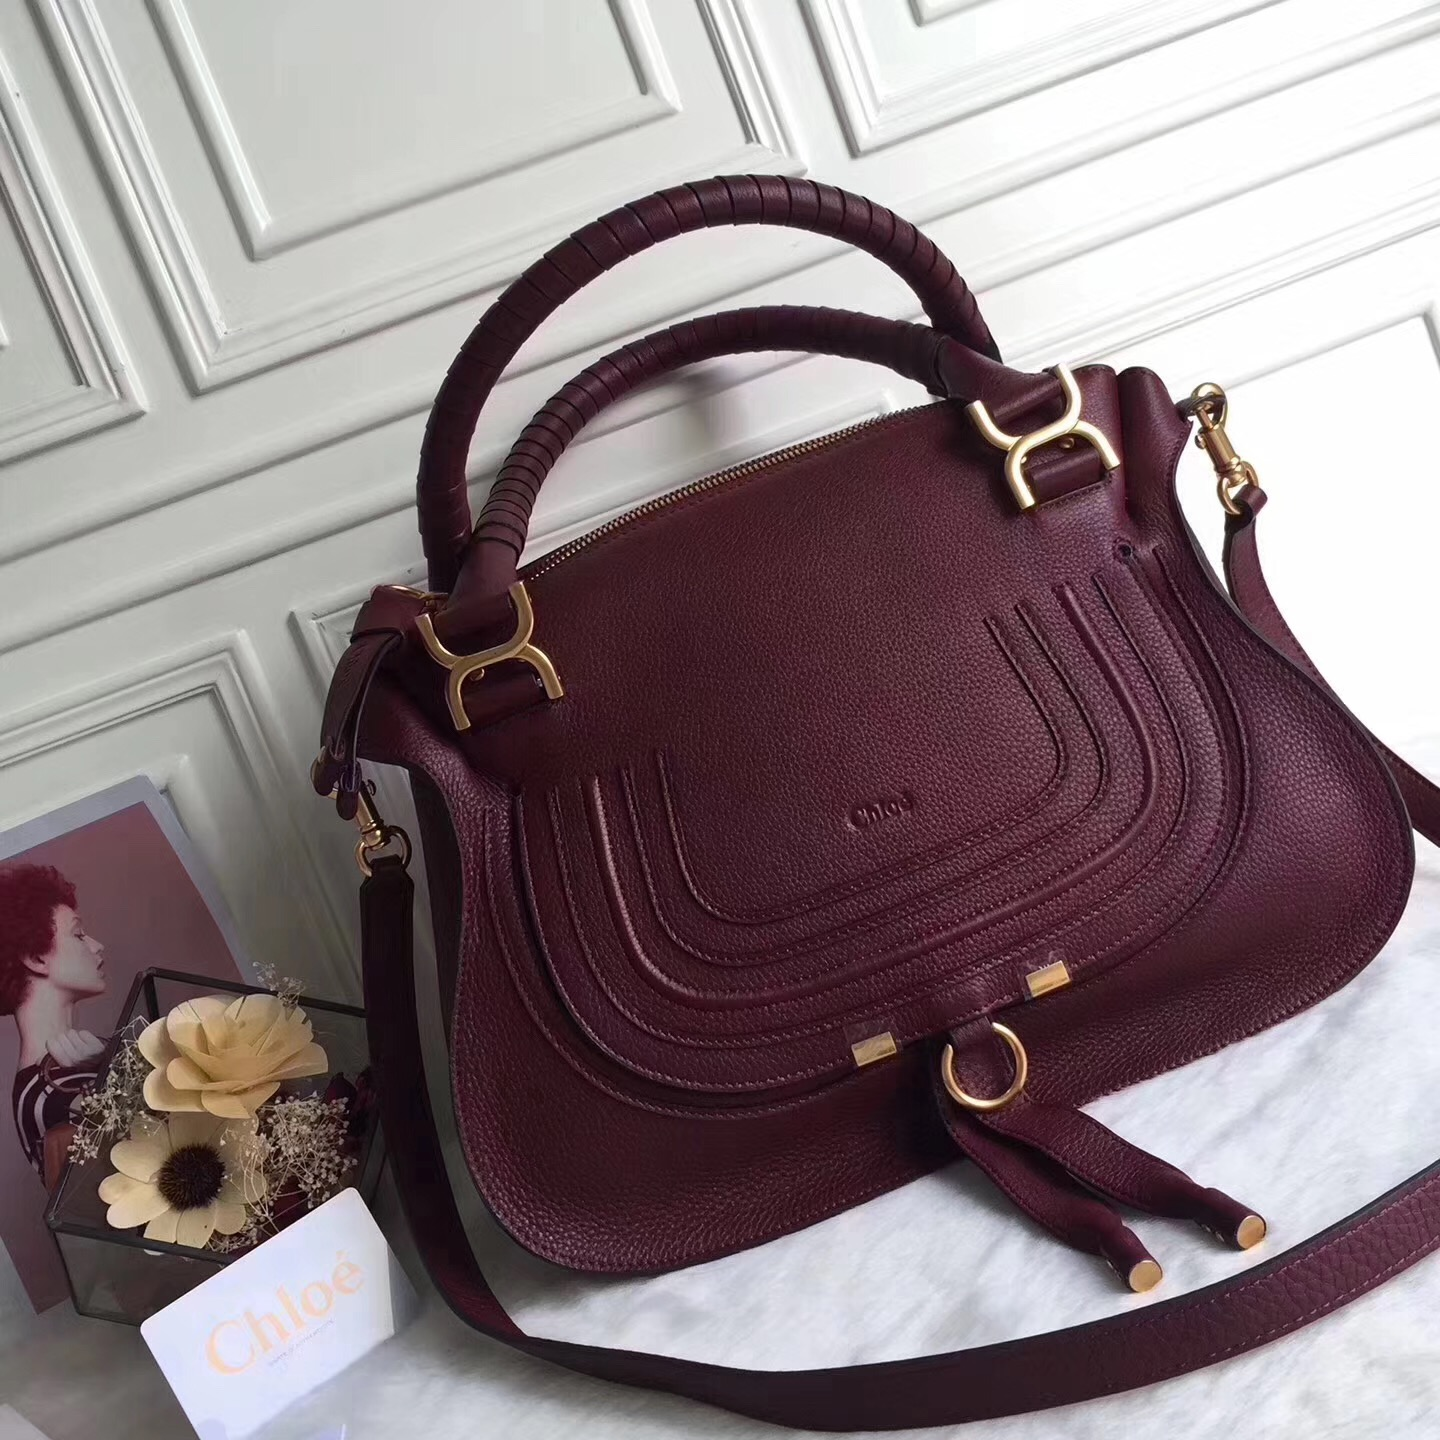 c3c0560fd8a Chloe Marcie Cow Leather Tote Handbag Burgundy [RH0128] : Buy ...